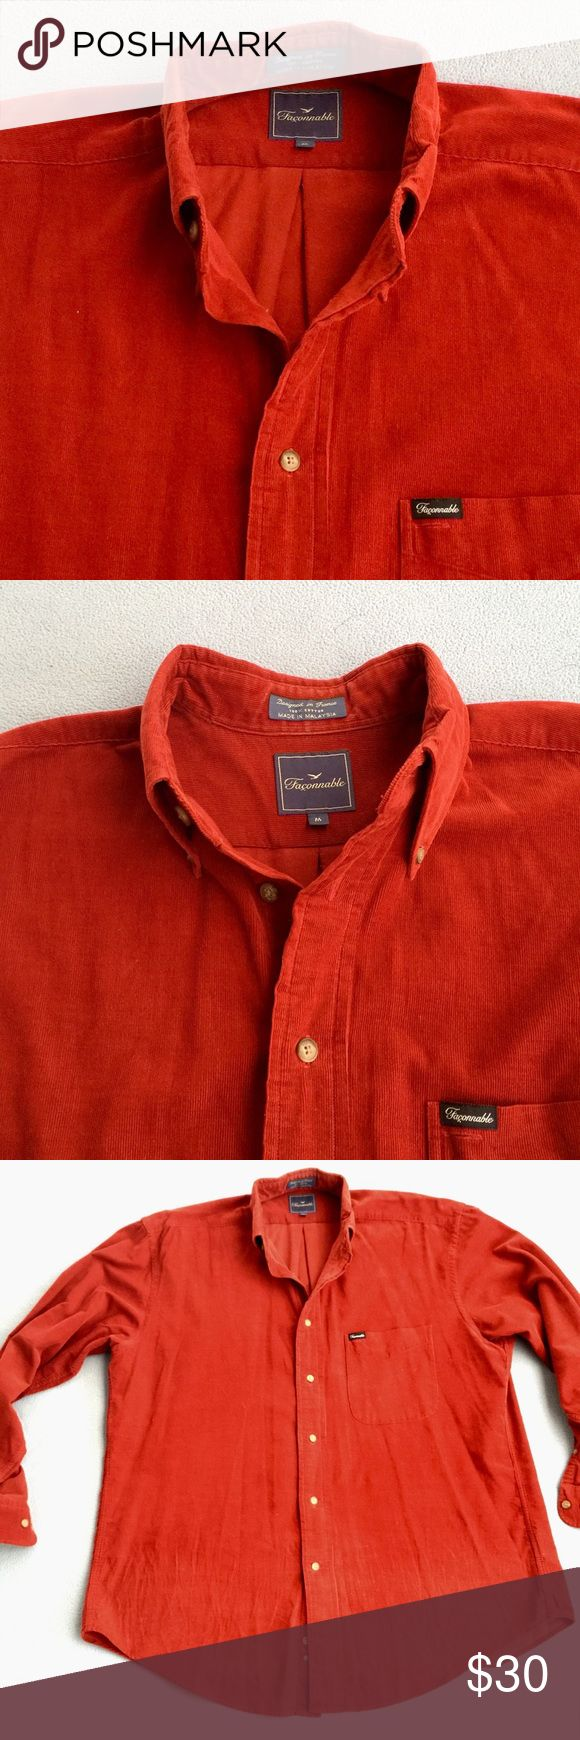 Men's red button down Faconnable shirt Light signs of wear that are hard to capture in photos.  Reflected in price Faconnable Shirts Casual Button Down Shirts